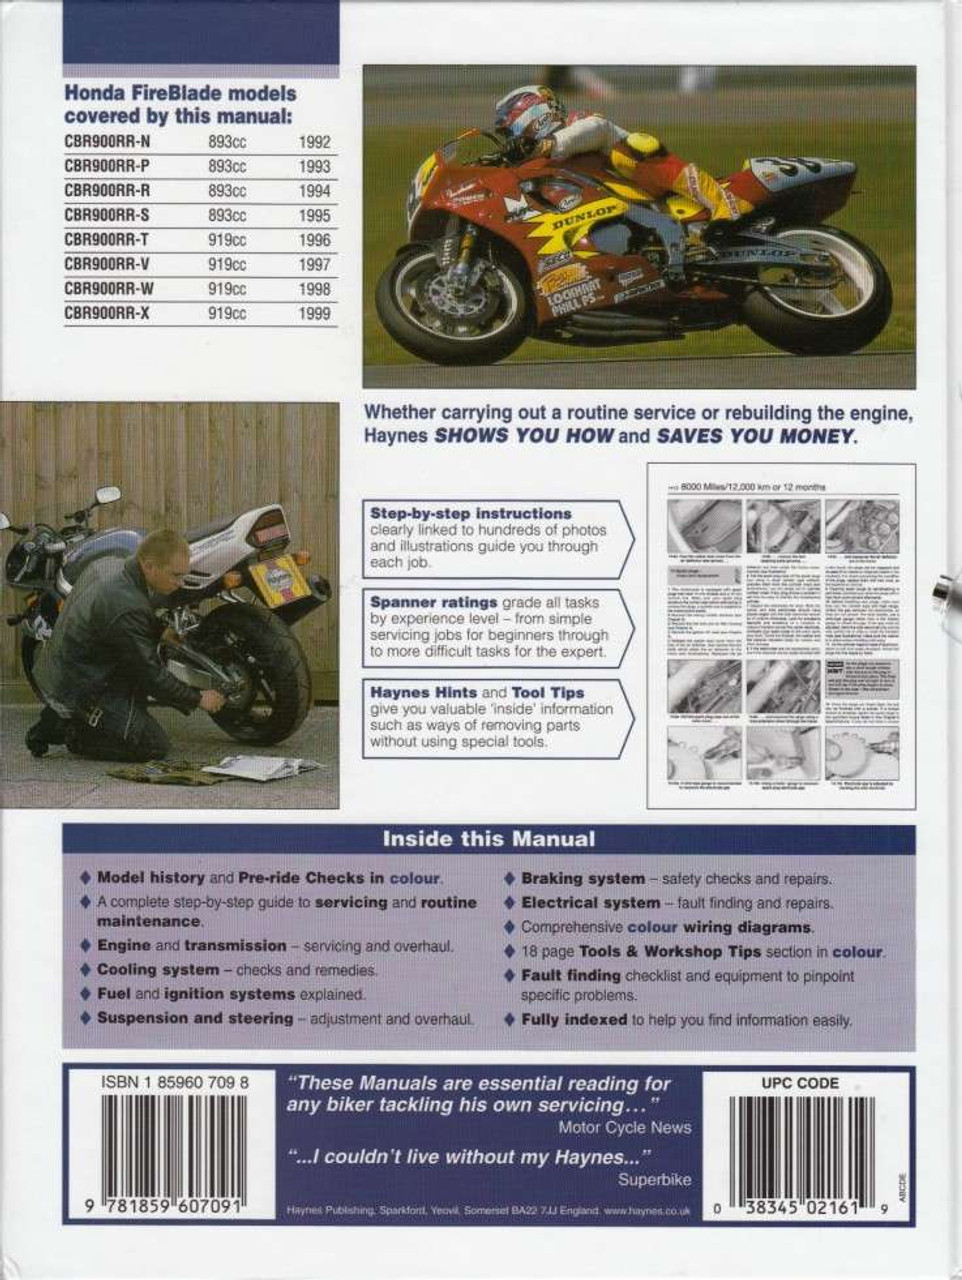 honda cbr900rr fireblade fours 1992 - 1999 workshop manual back cover